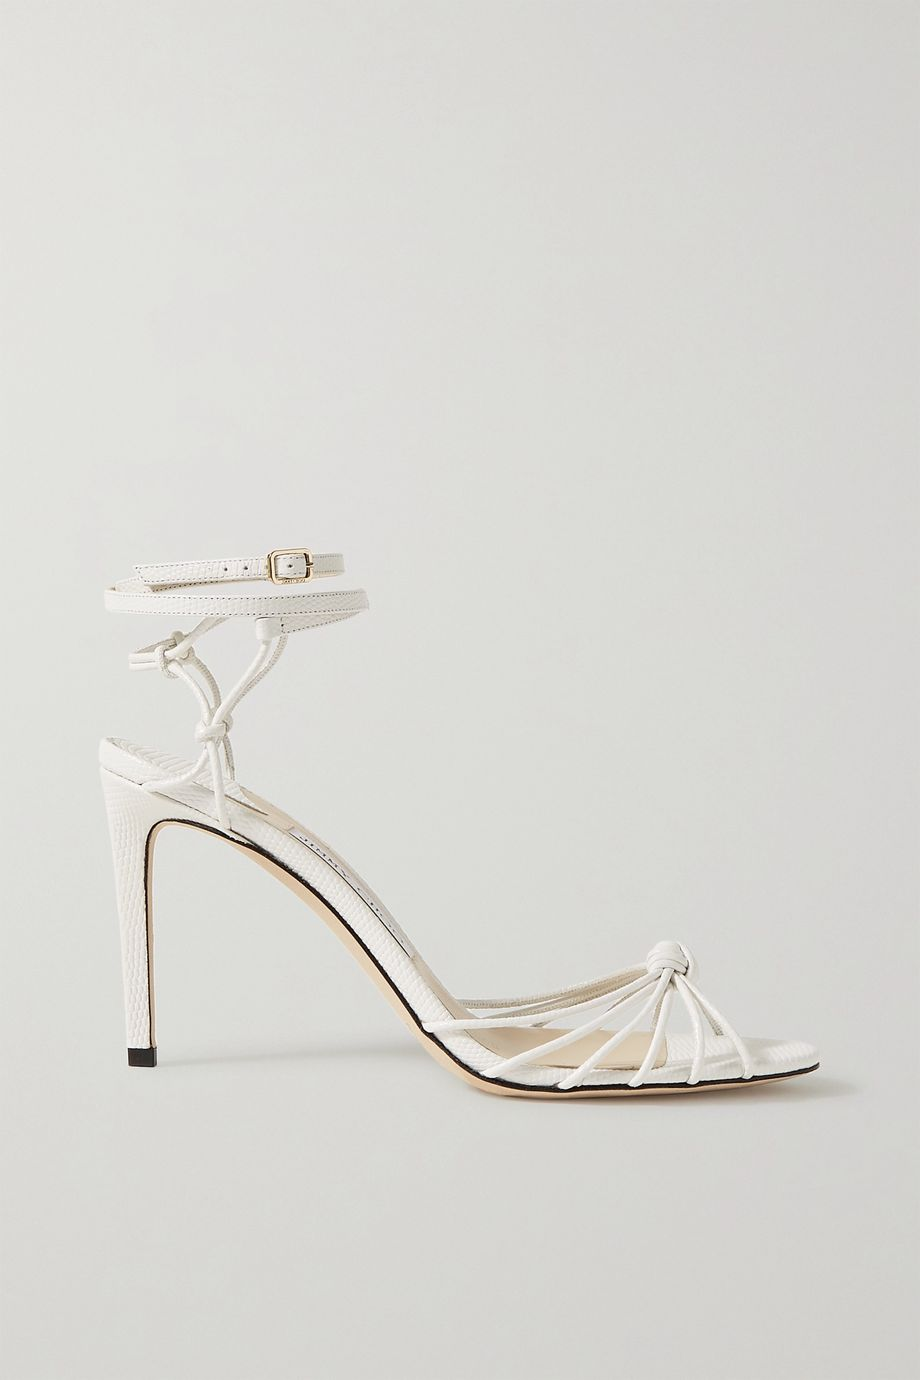 Jimmy Choo Lovella 85 knotted lizard-effect leather sandals